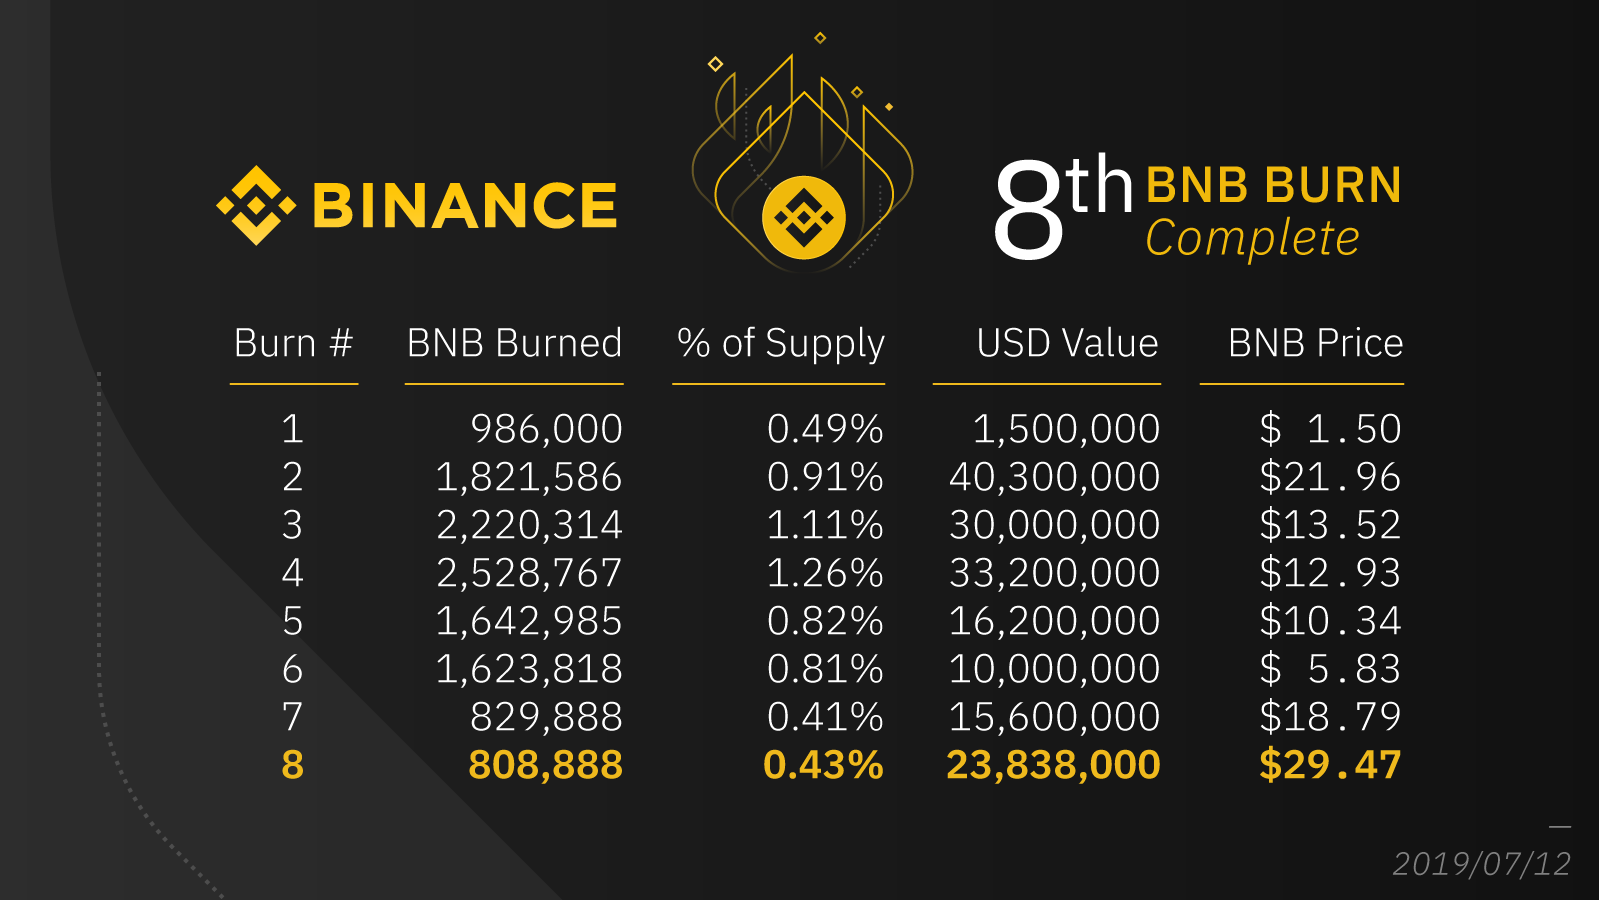 3.Burncoin: BNB